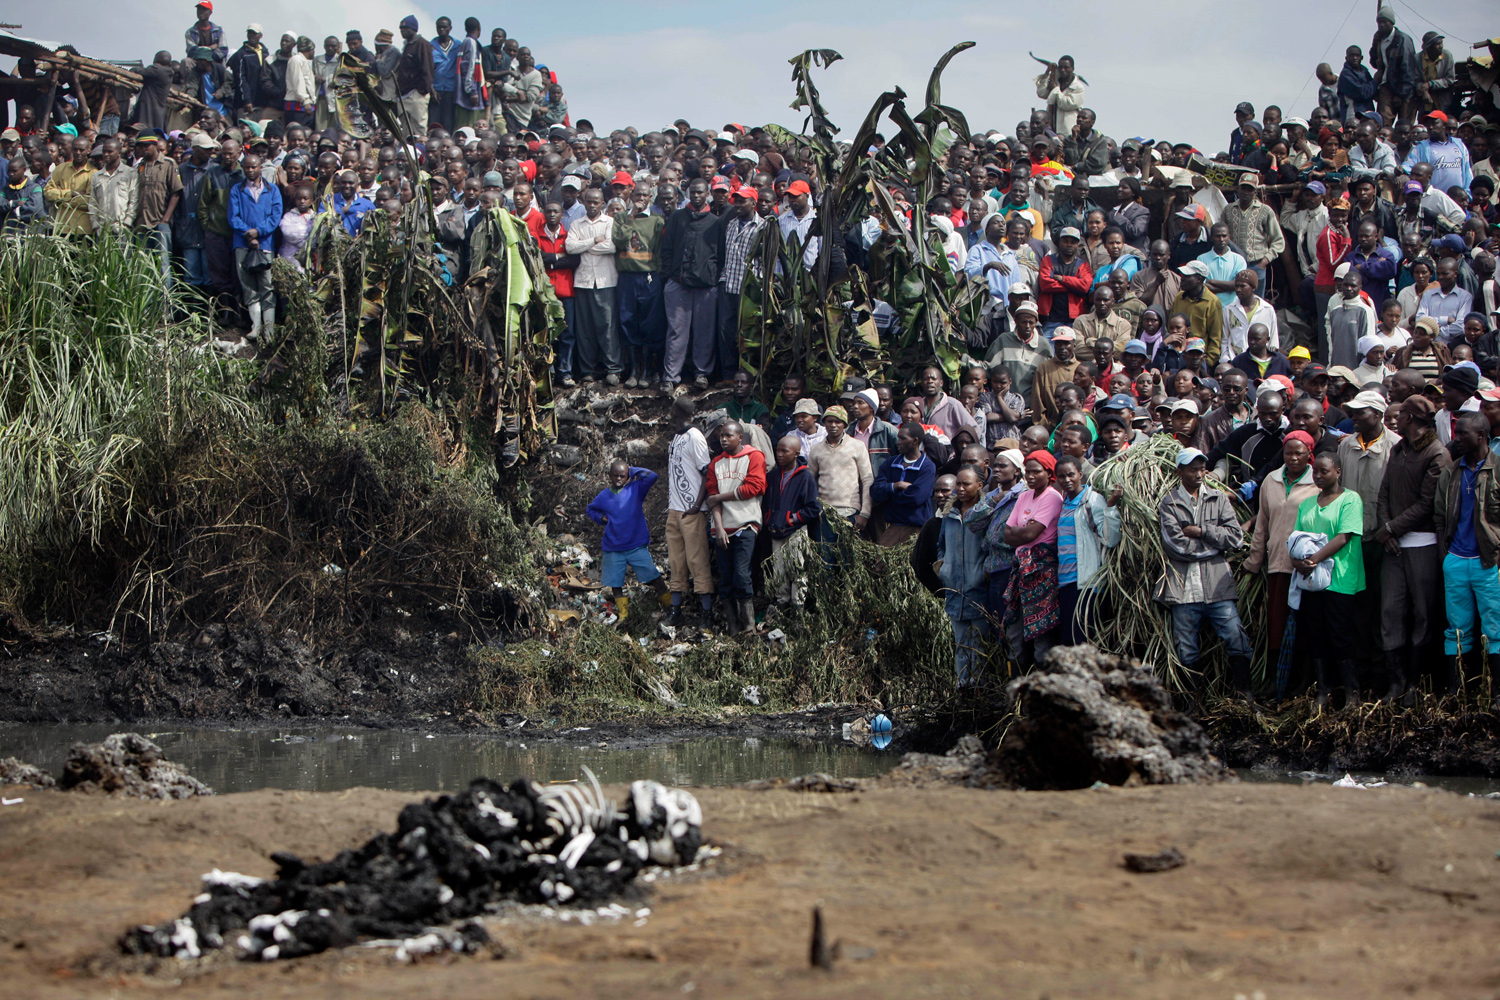 September 12, 2011. Residents of the area look on from across a small river at bodies of victims lying on the other side, after a pipeline explosion in Nairobi, Kenya.